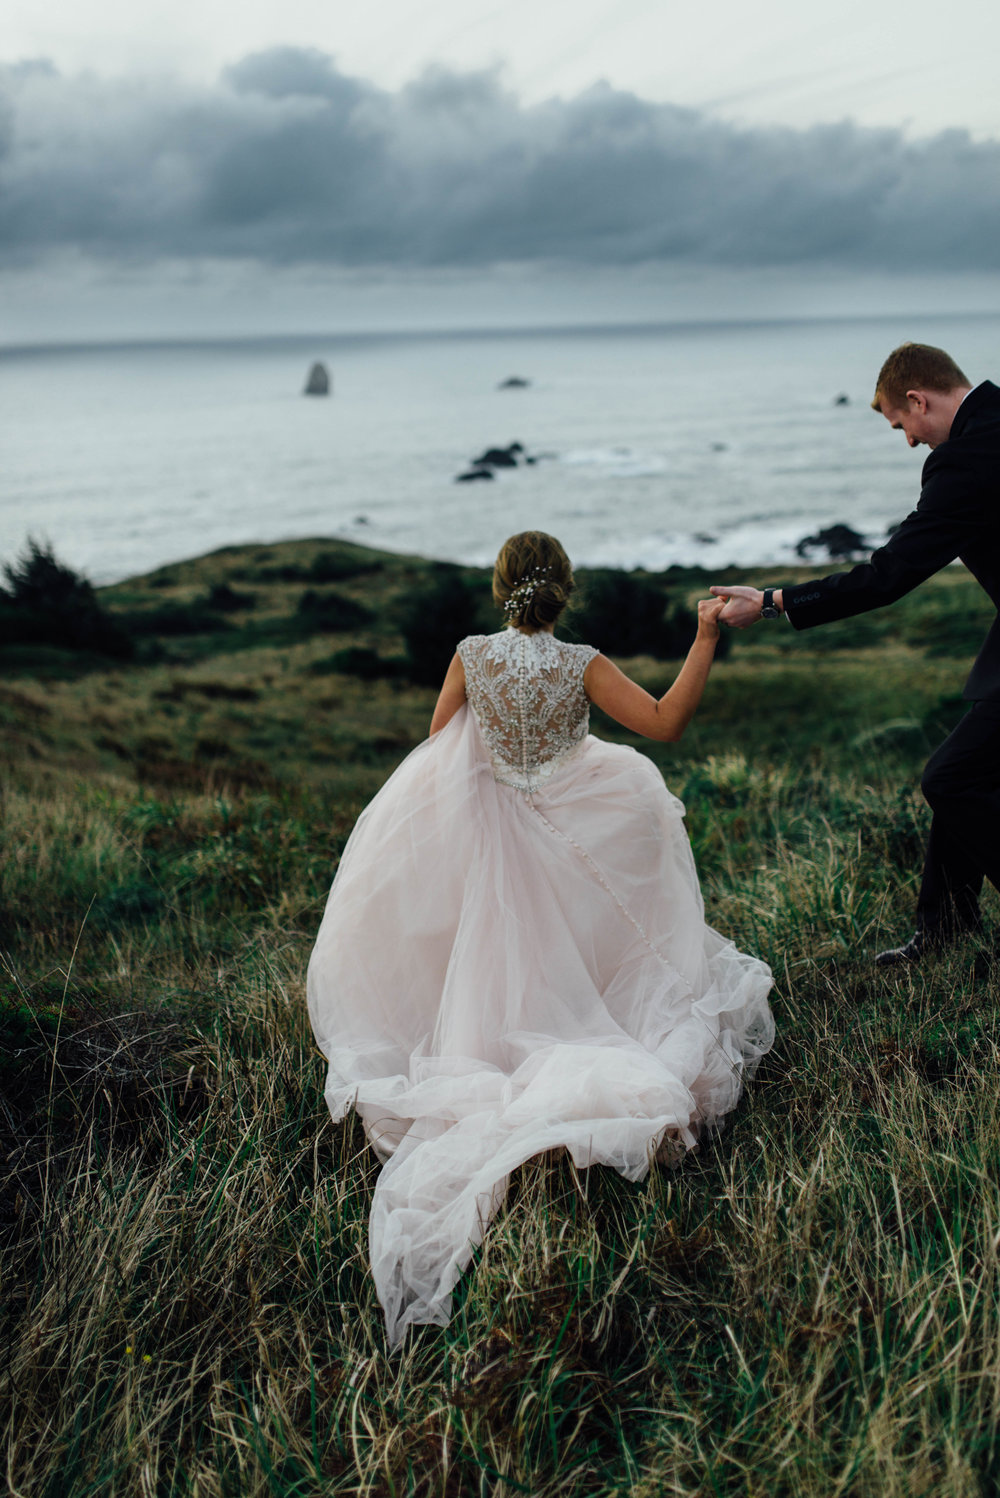 Oregon Coast Wedding | Blush Dress | Oregon Destination Photographer : Jessicaheronimages.com